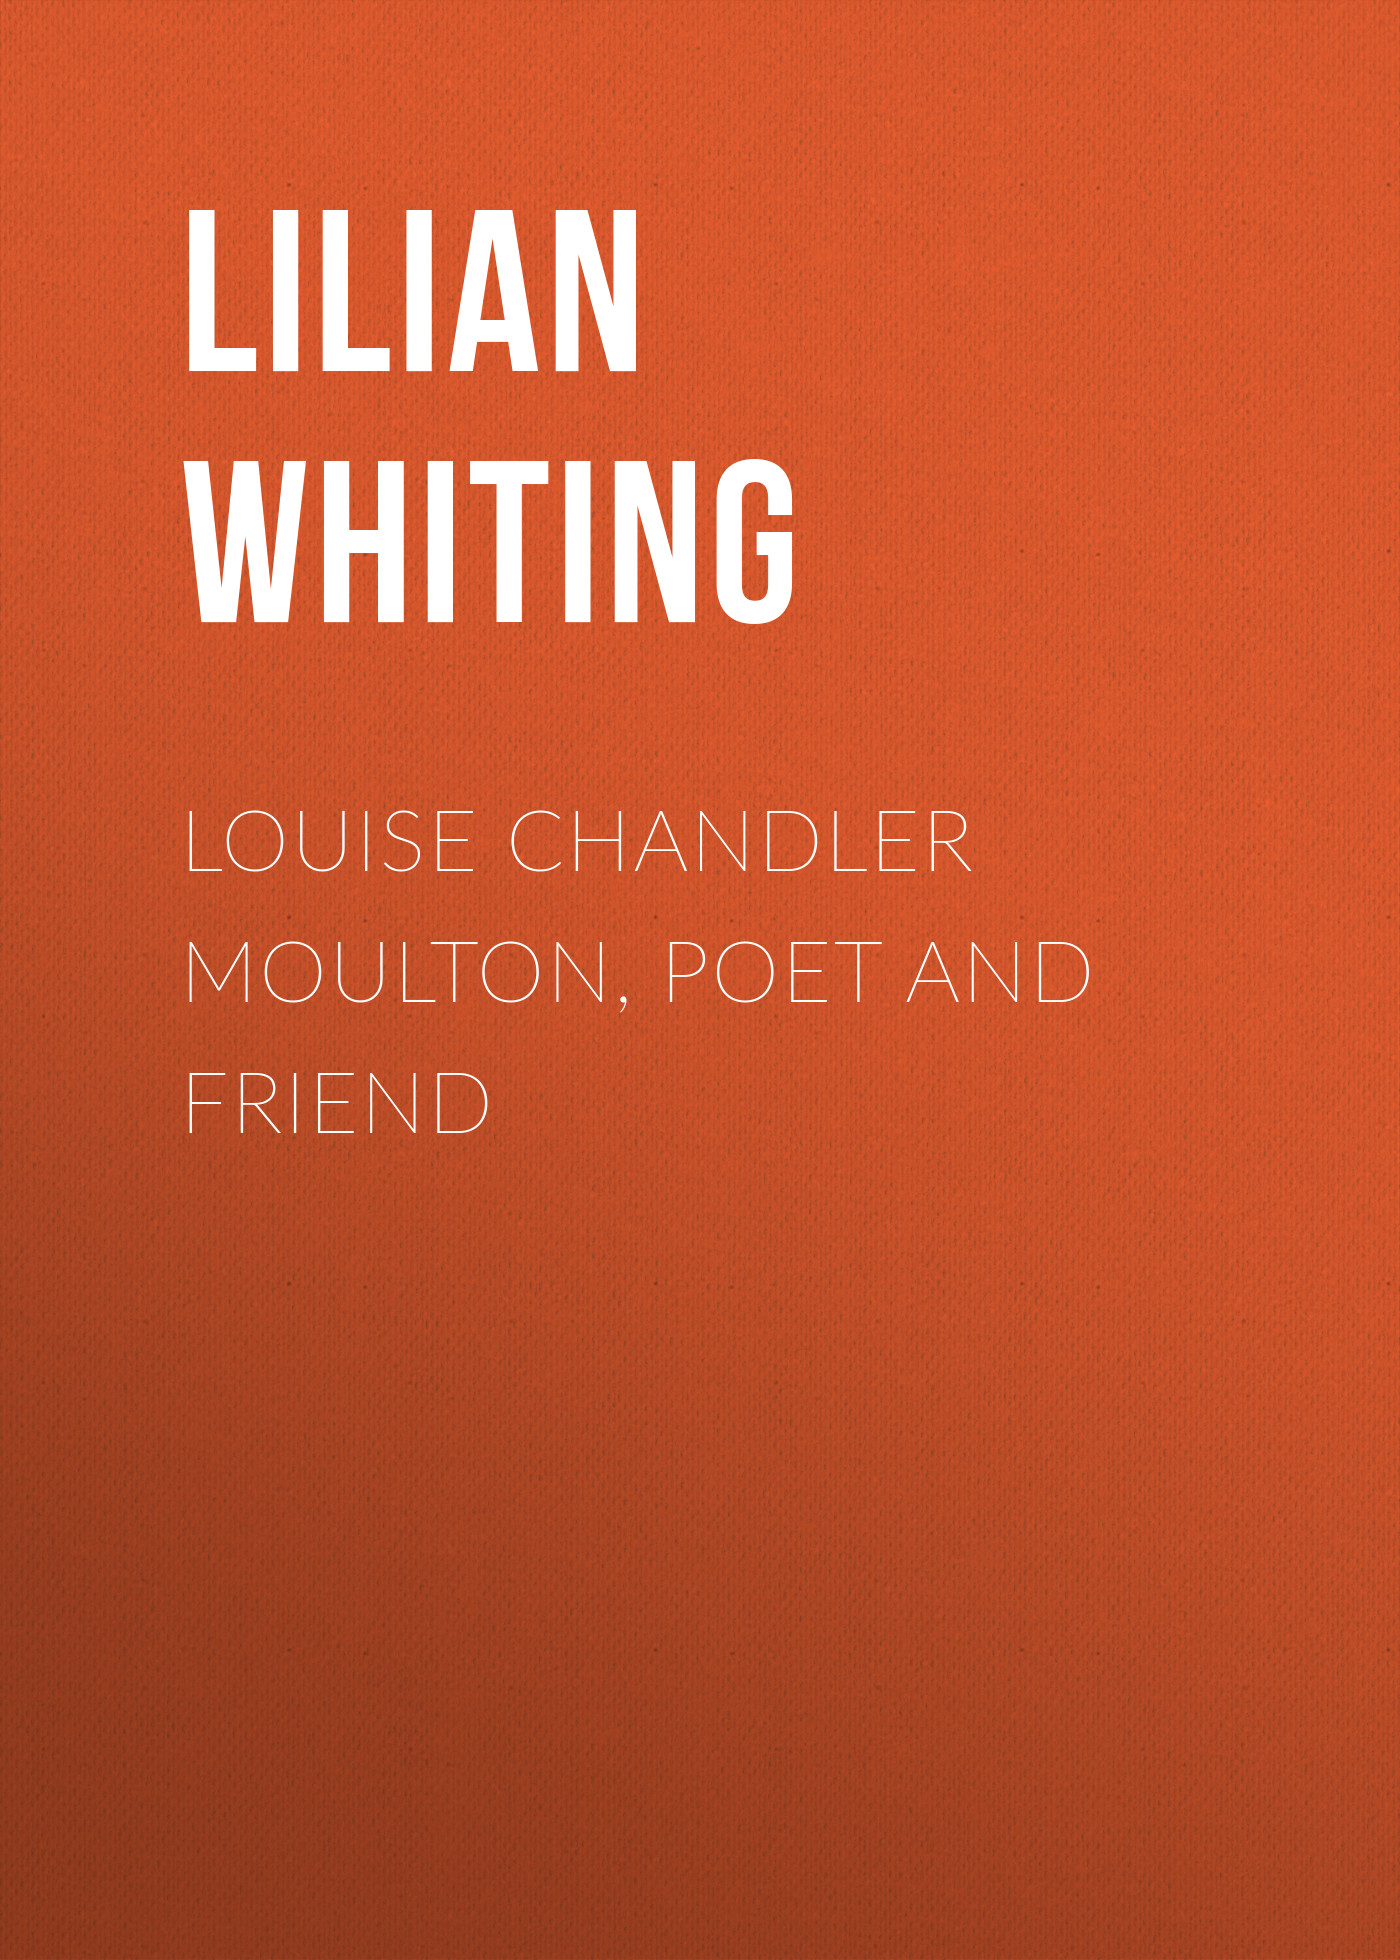 Lilian Whiting Louise Chandler Moulton, Poet and Friend duchess airy fairy lilian